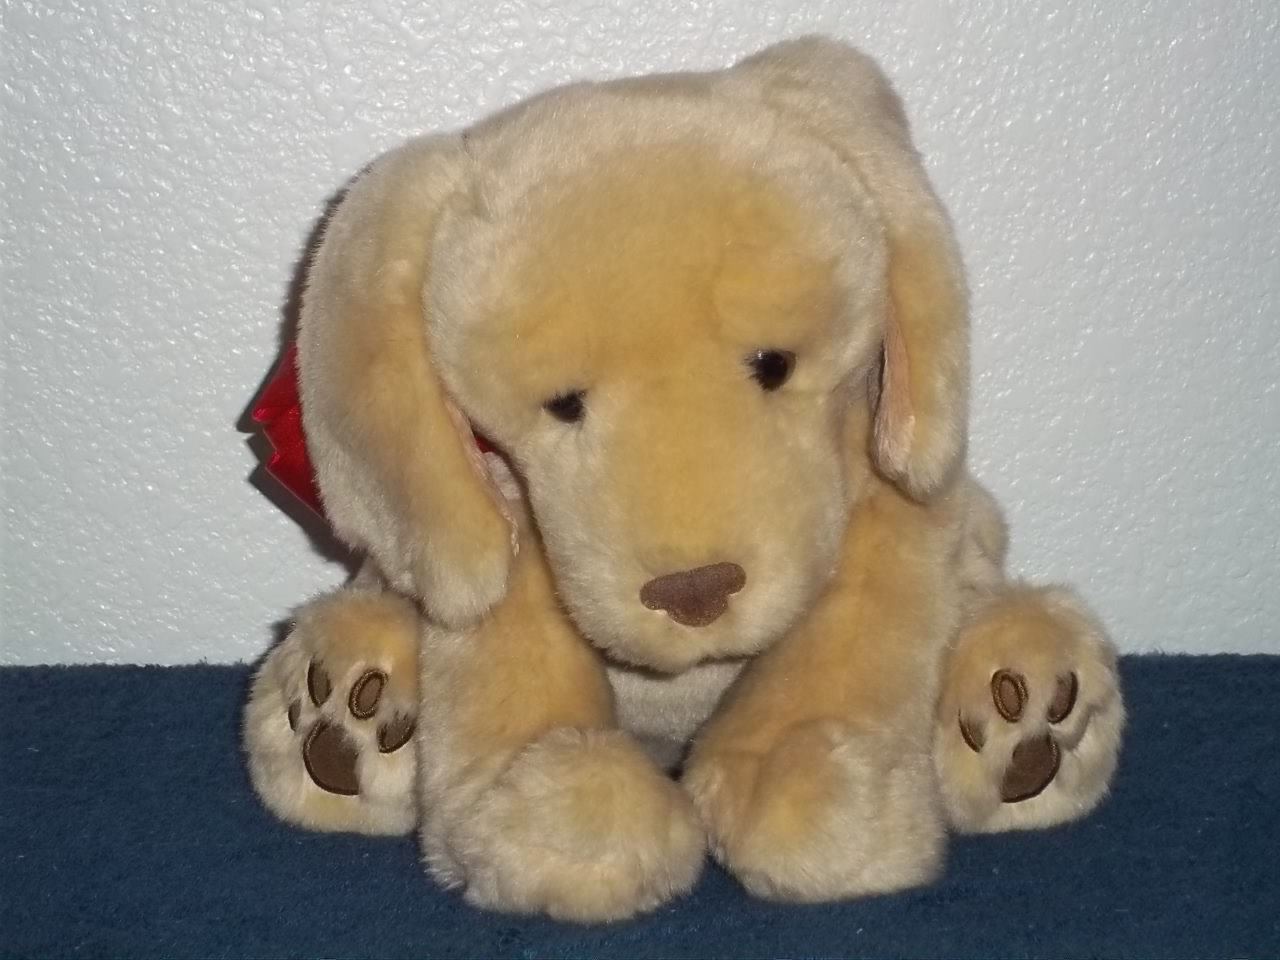 Lab plush dog from play wonder 8 inches tall and 50 similar items